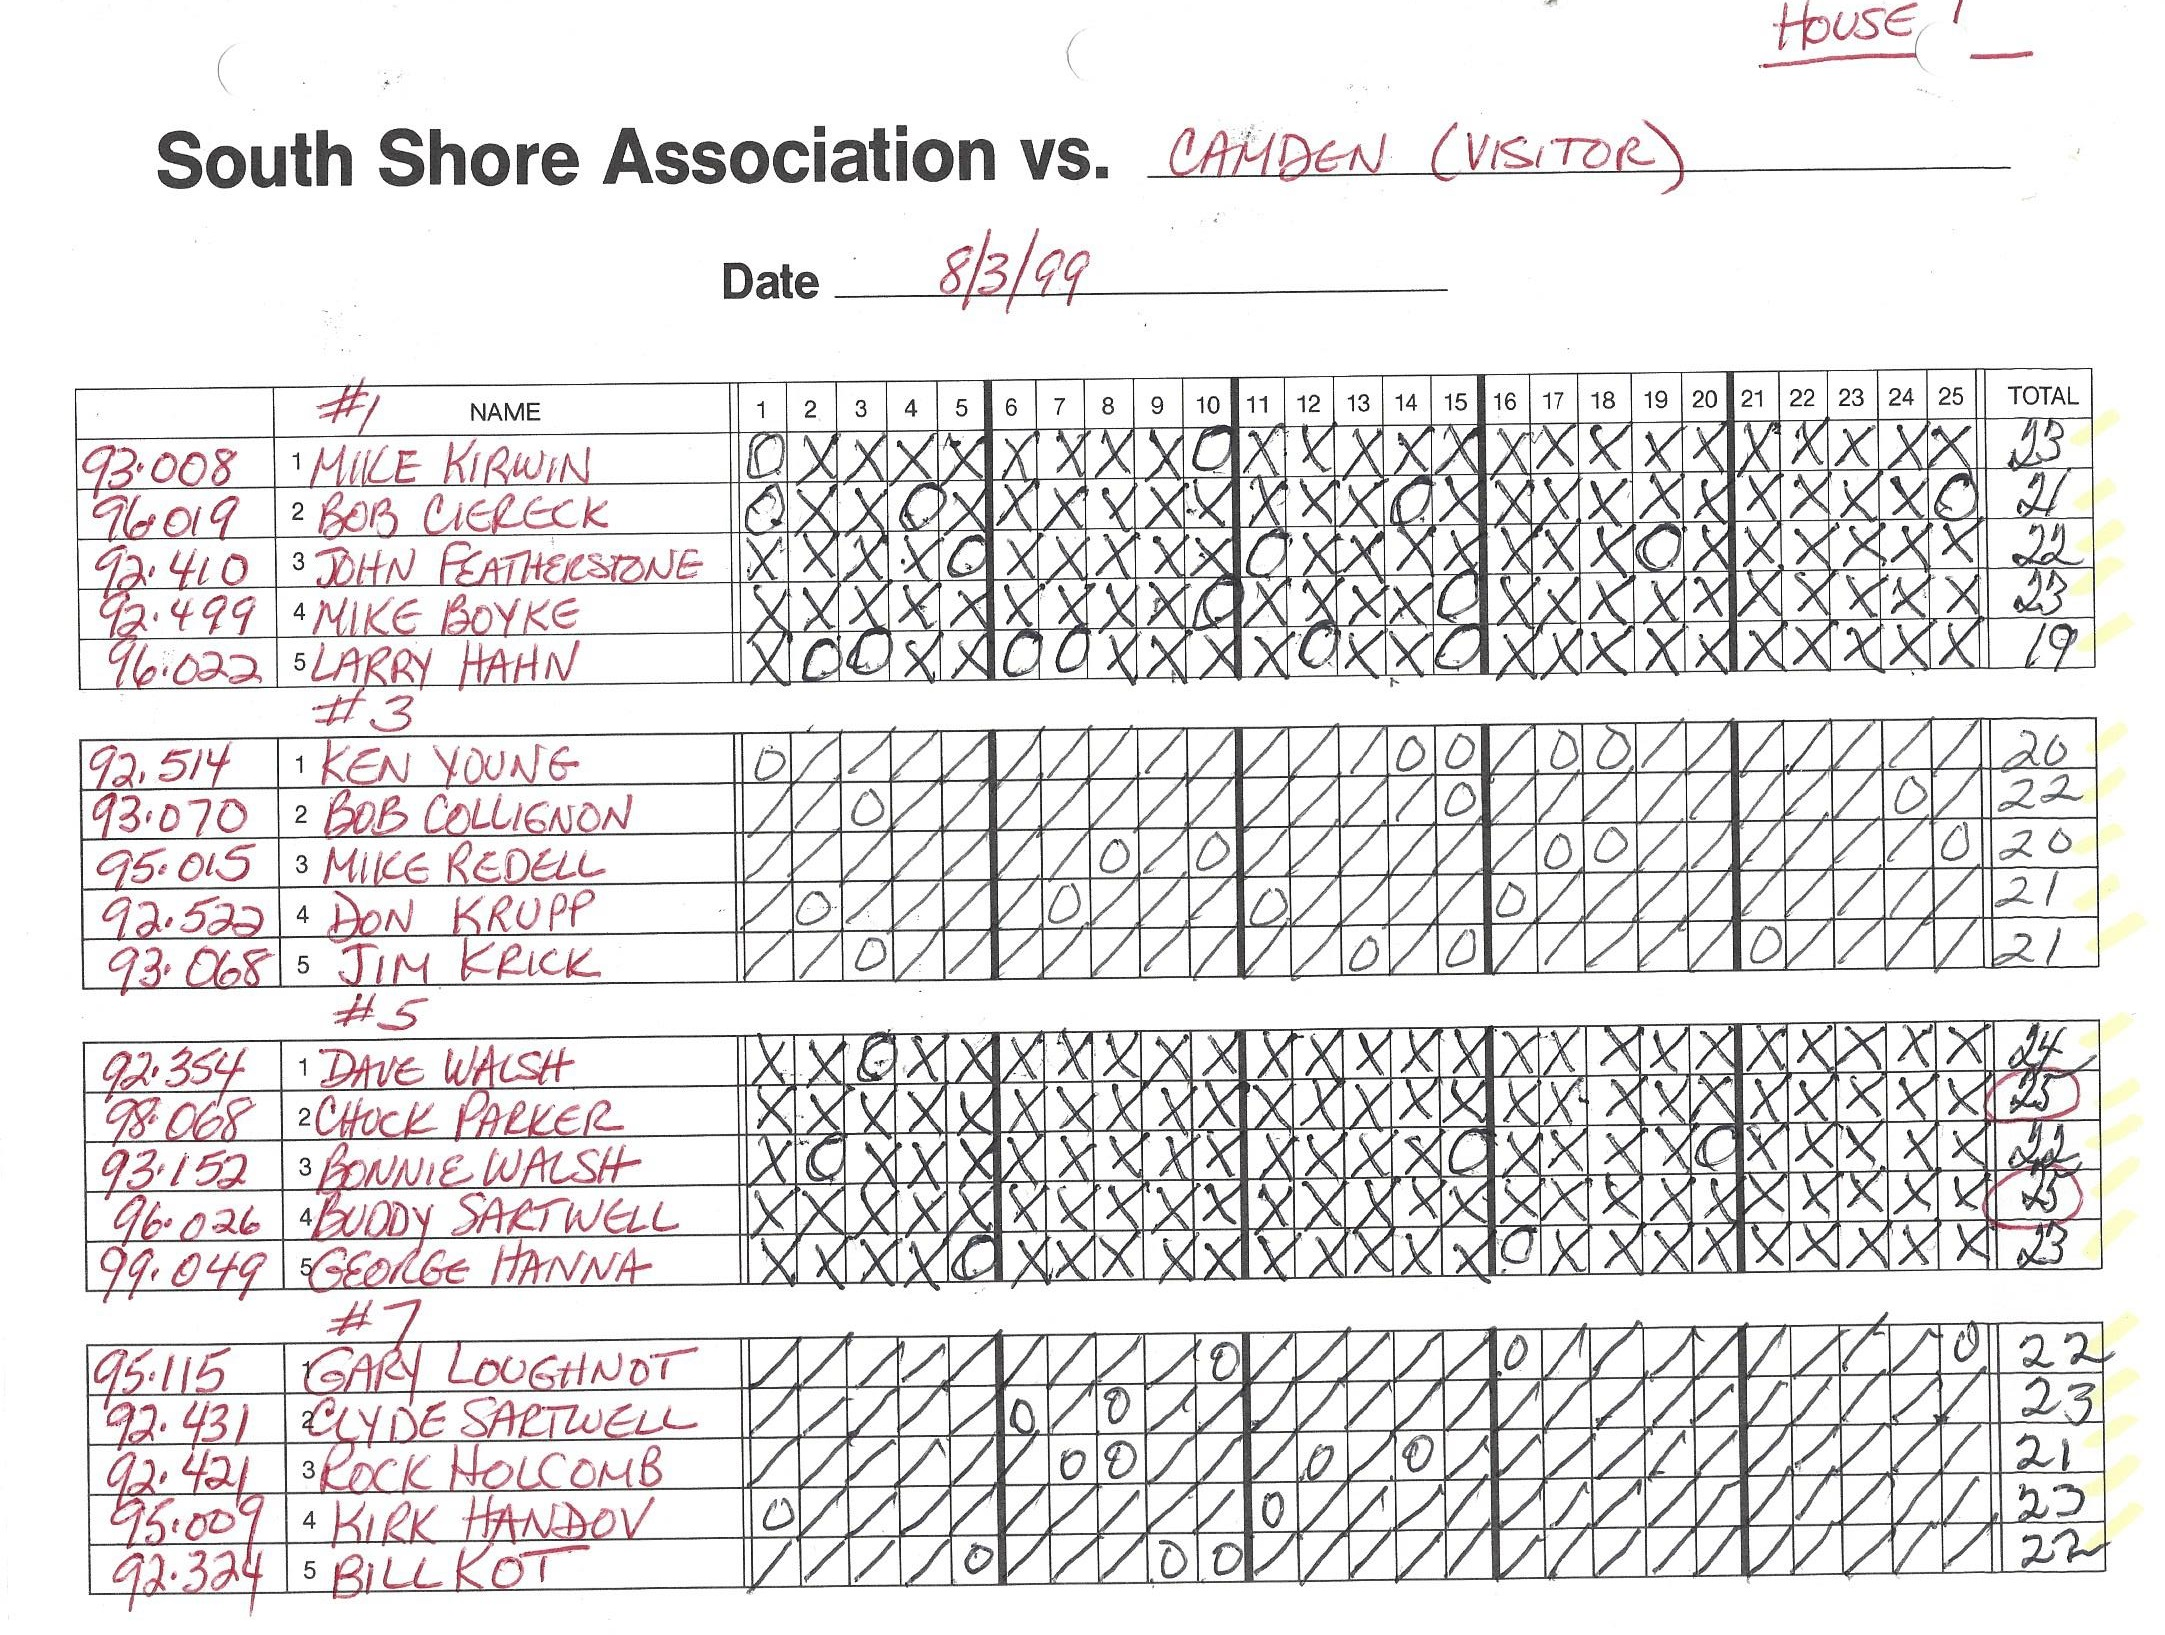 1999 CNYTL S Shore 0803 scoresht 2